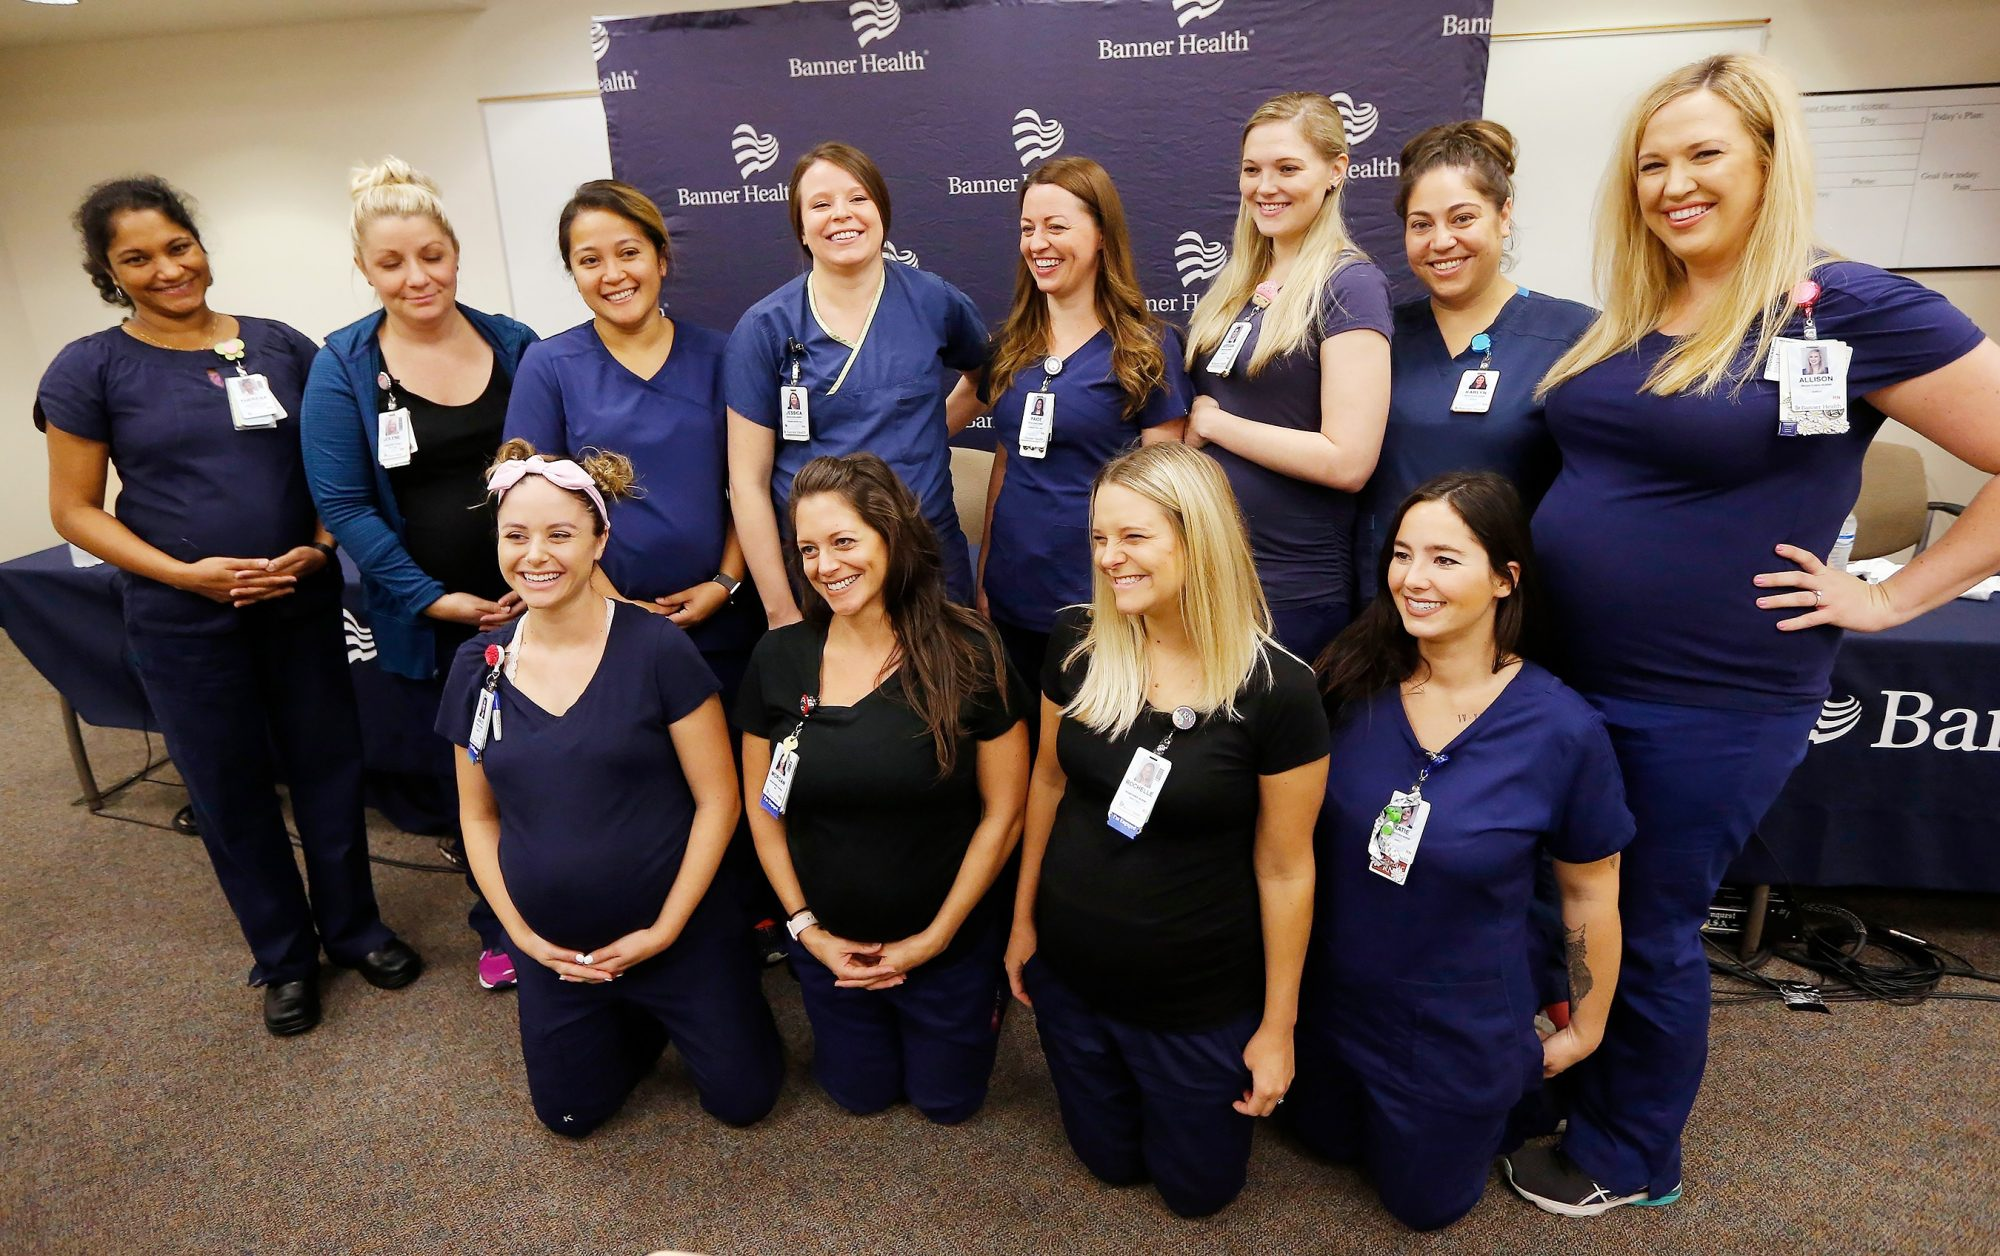 Pregnant Nurses, Mesa, USA - 17 Aug 2018